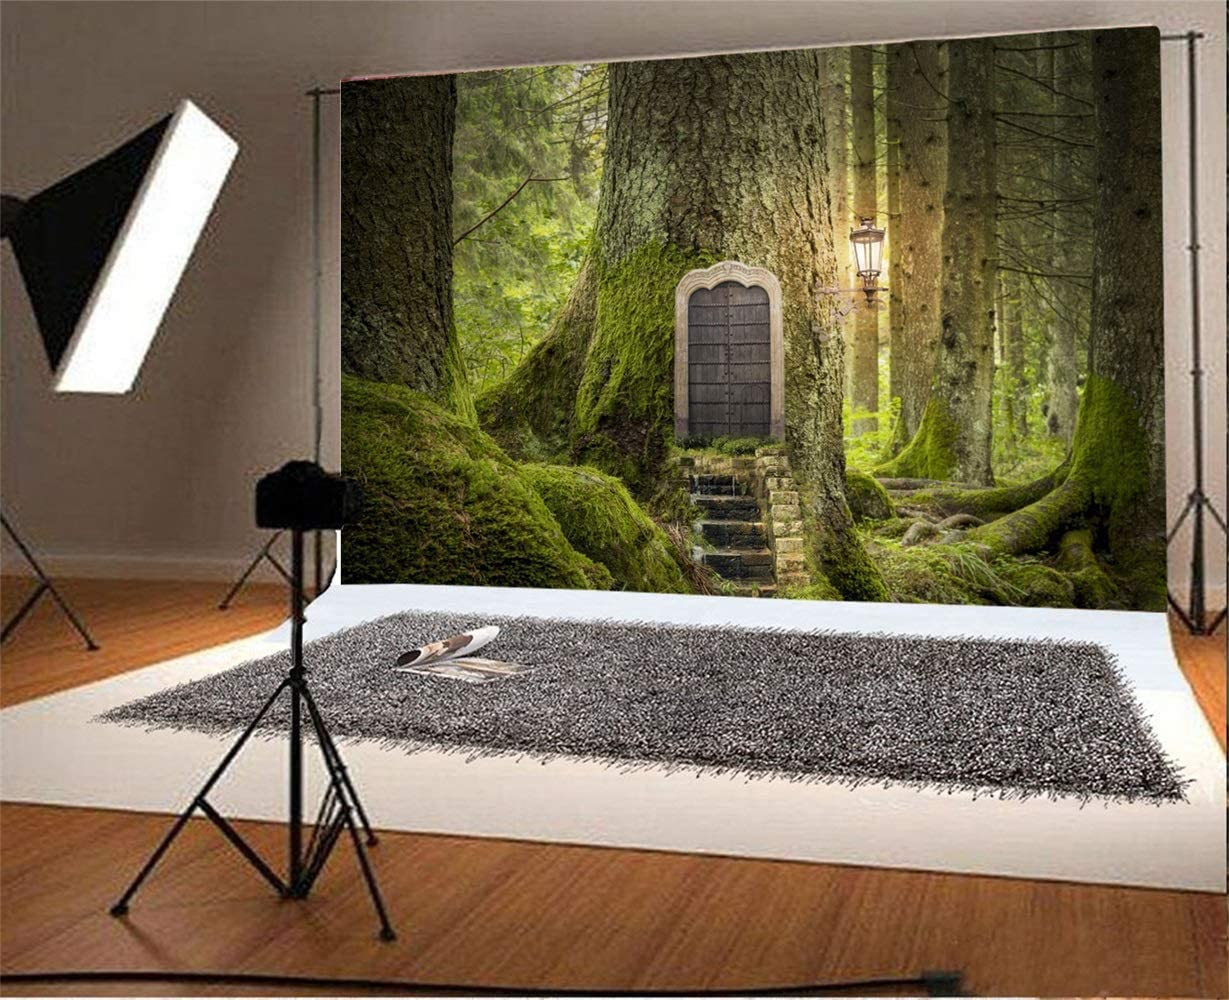 10x6.5 Dreamy Forest Backdrop Polyester Fantastic Huge Mossy Tree Root Door Stairs Lighting Lantern Scene Photography Background Baby 1st Birthday Fairytale Party Banner Kids Child Portrait Shoot